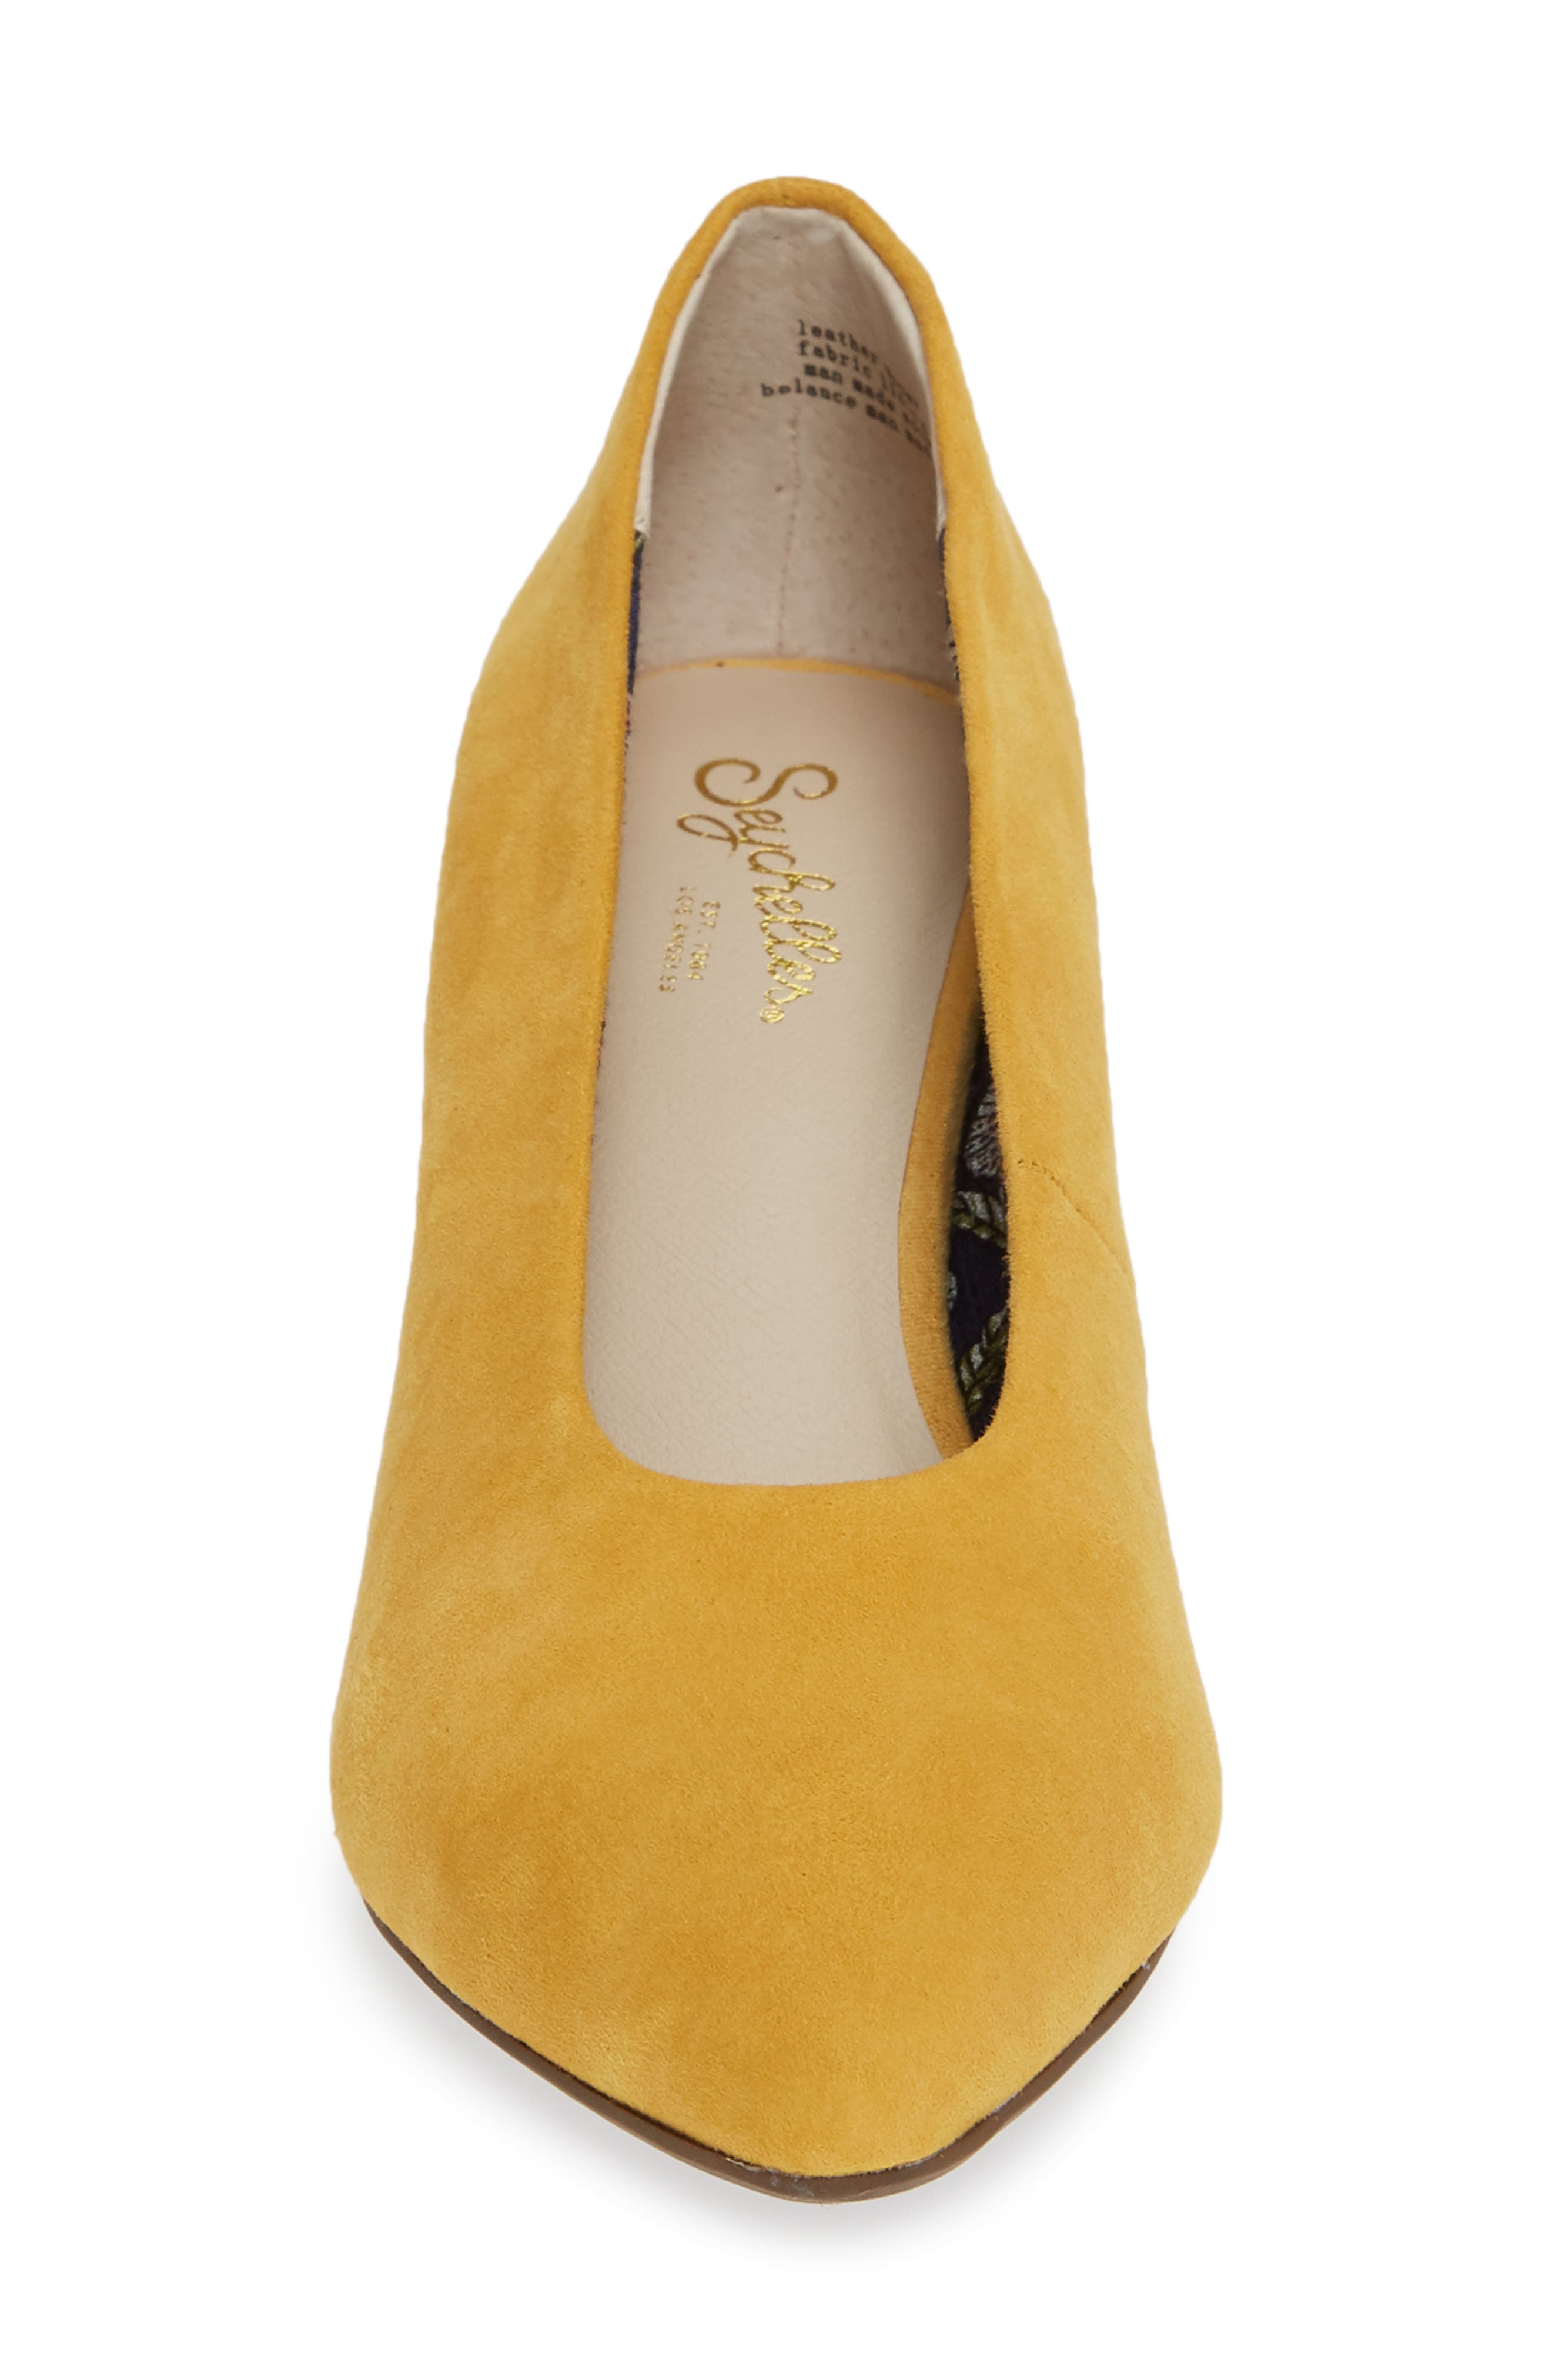 Rehearse Pointy Toe Pump,                             Alternate thumbnail 16, color,